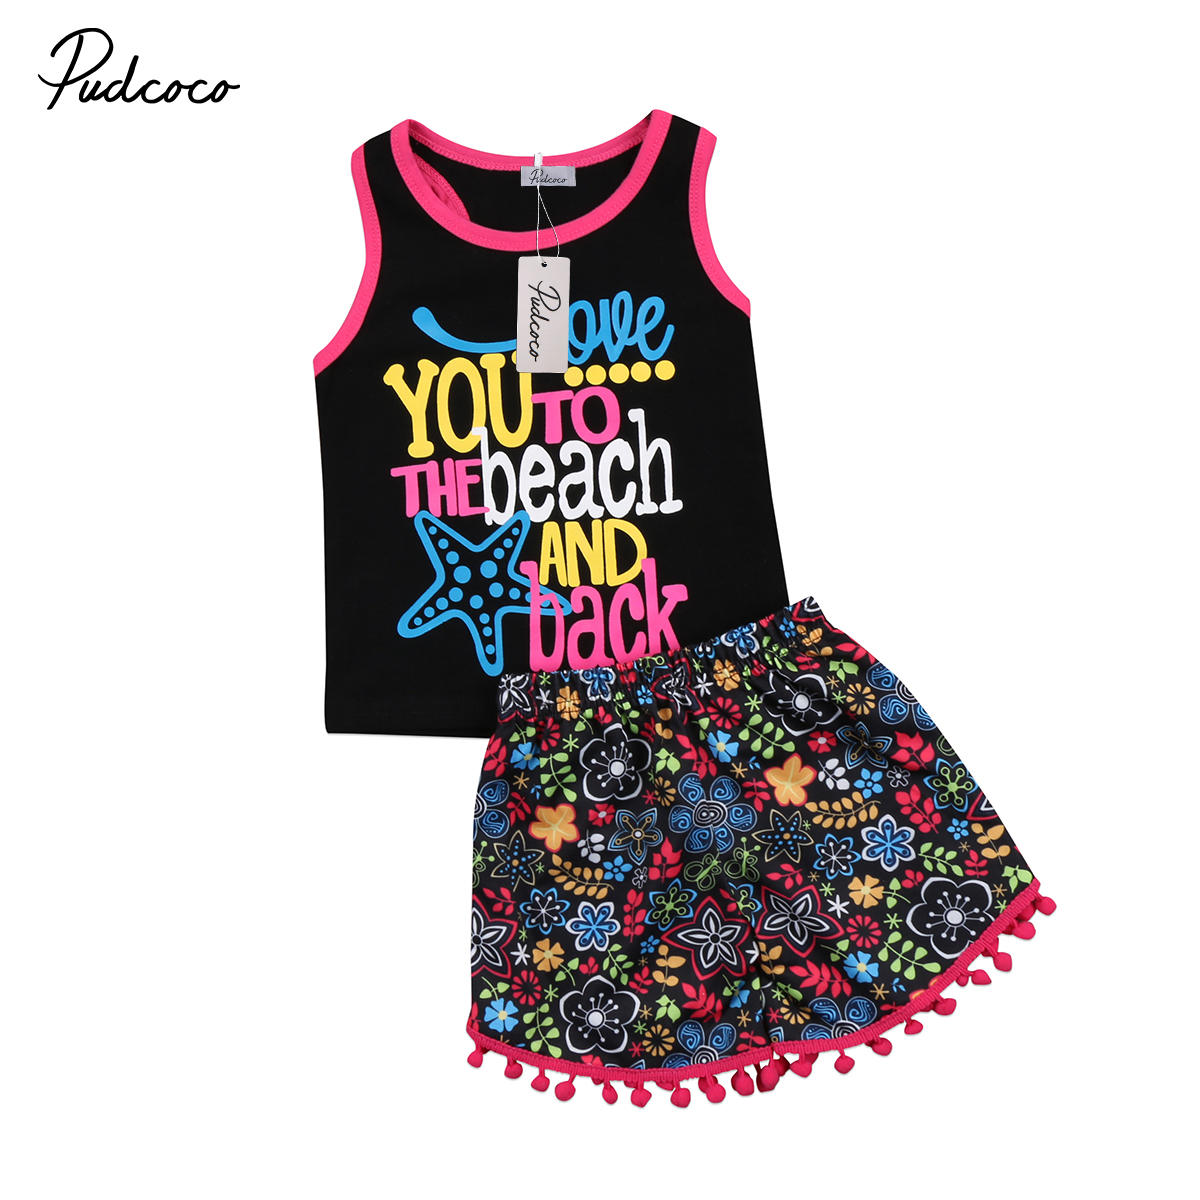 2018 Brand New Toddler Infant Child Kids Baby Girls Summer Outfits Clothes Sleeveless T-shirt Tops+Short 2PCS Colorful Set 6M-5T hot sale 2016 kids boys girls summer tops baby t shirts fashion leaf print sleeveless kniting tee baby clothes children t shirt